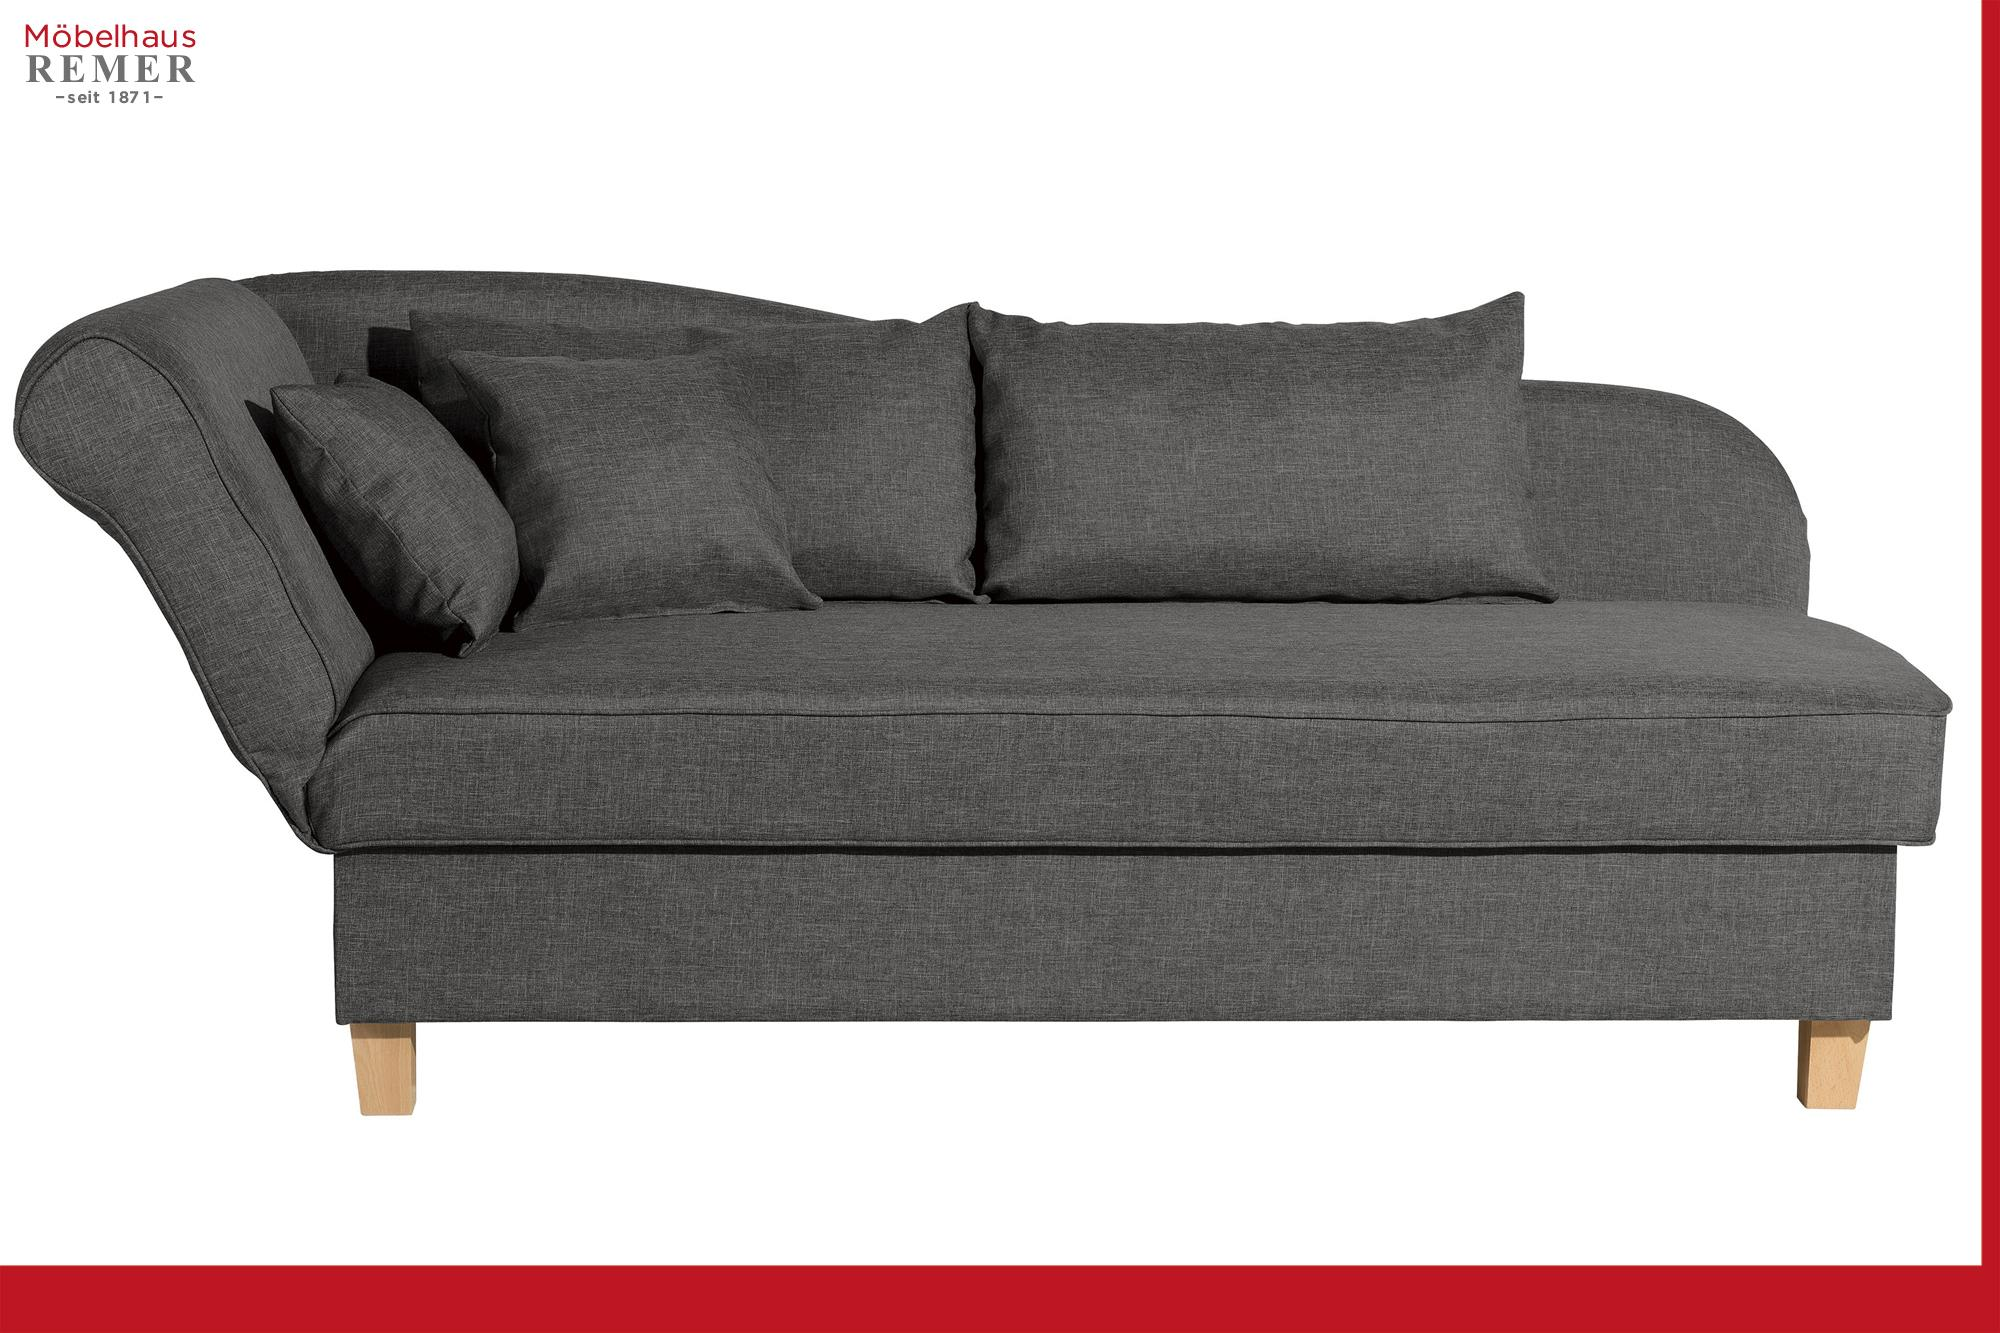 Schlafsofas Made In Germany Max Winzer Recamiere Selma Flachgewebe Uni